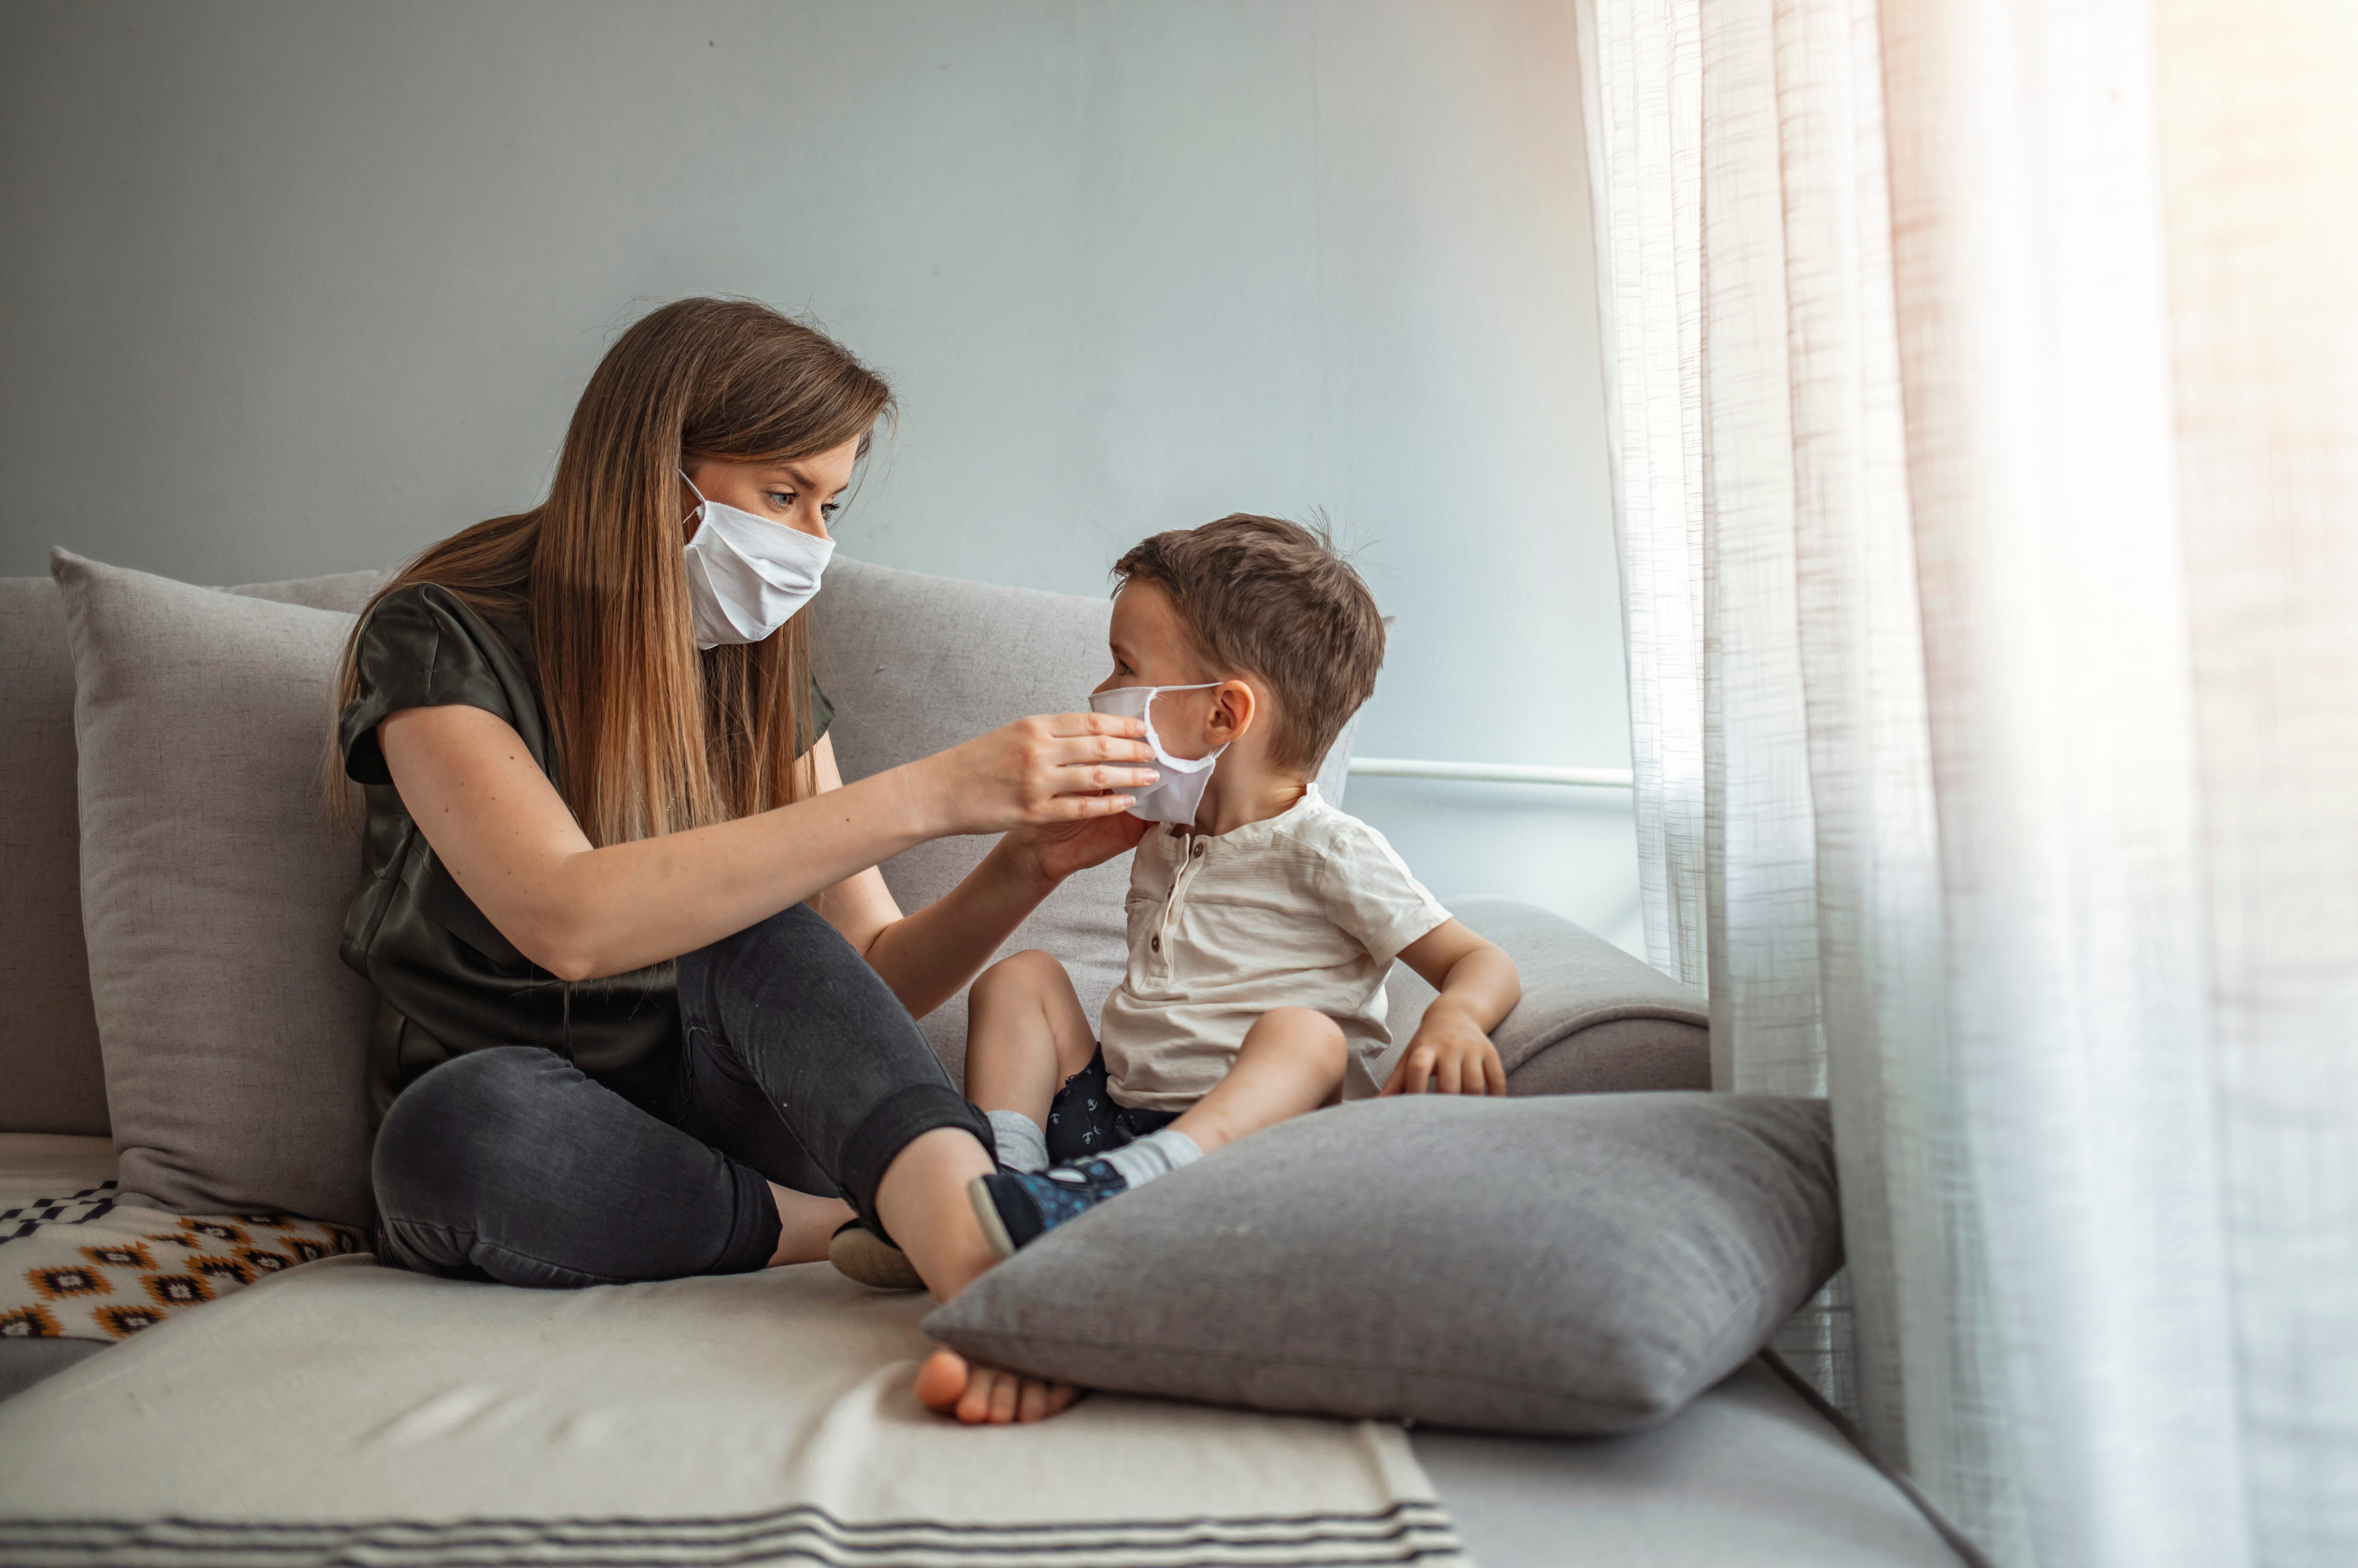 Mother putting protective face mask on her child.